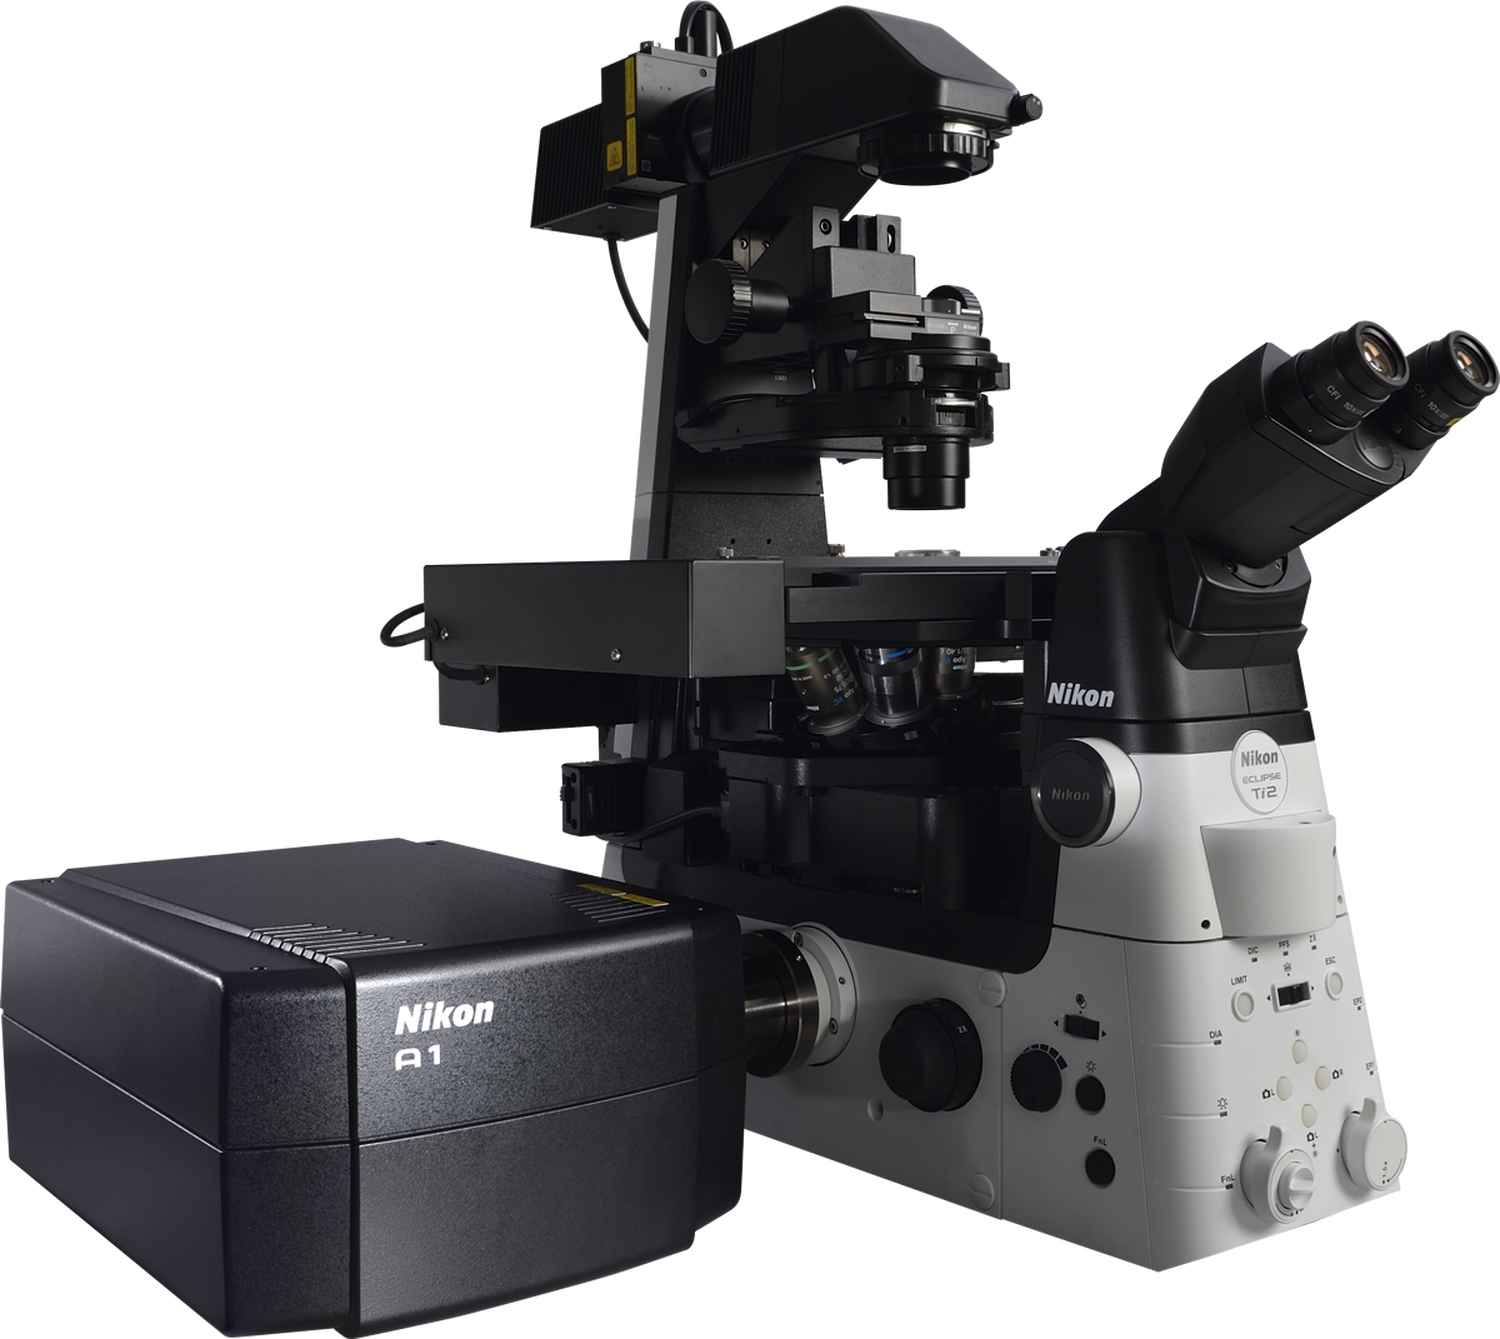 Nikon Releases Confocal Microscope with World's Largest